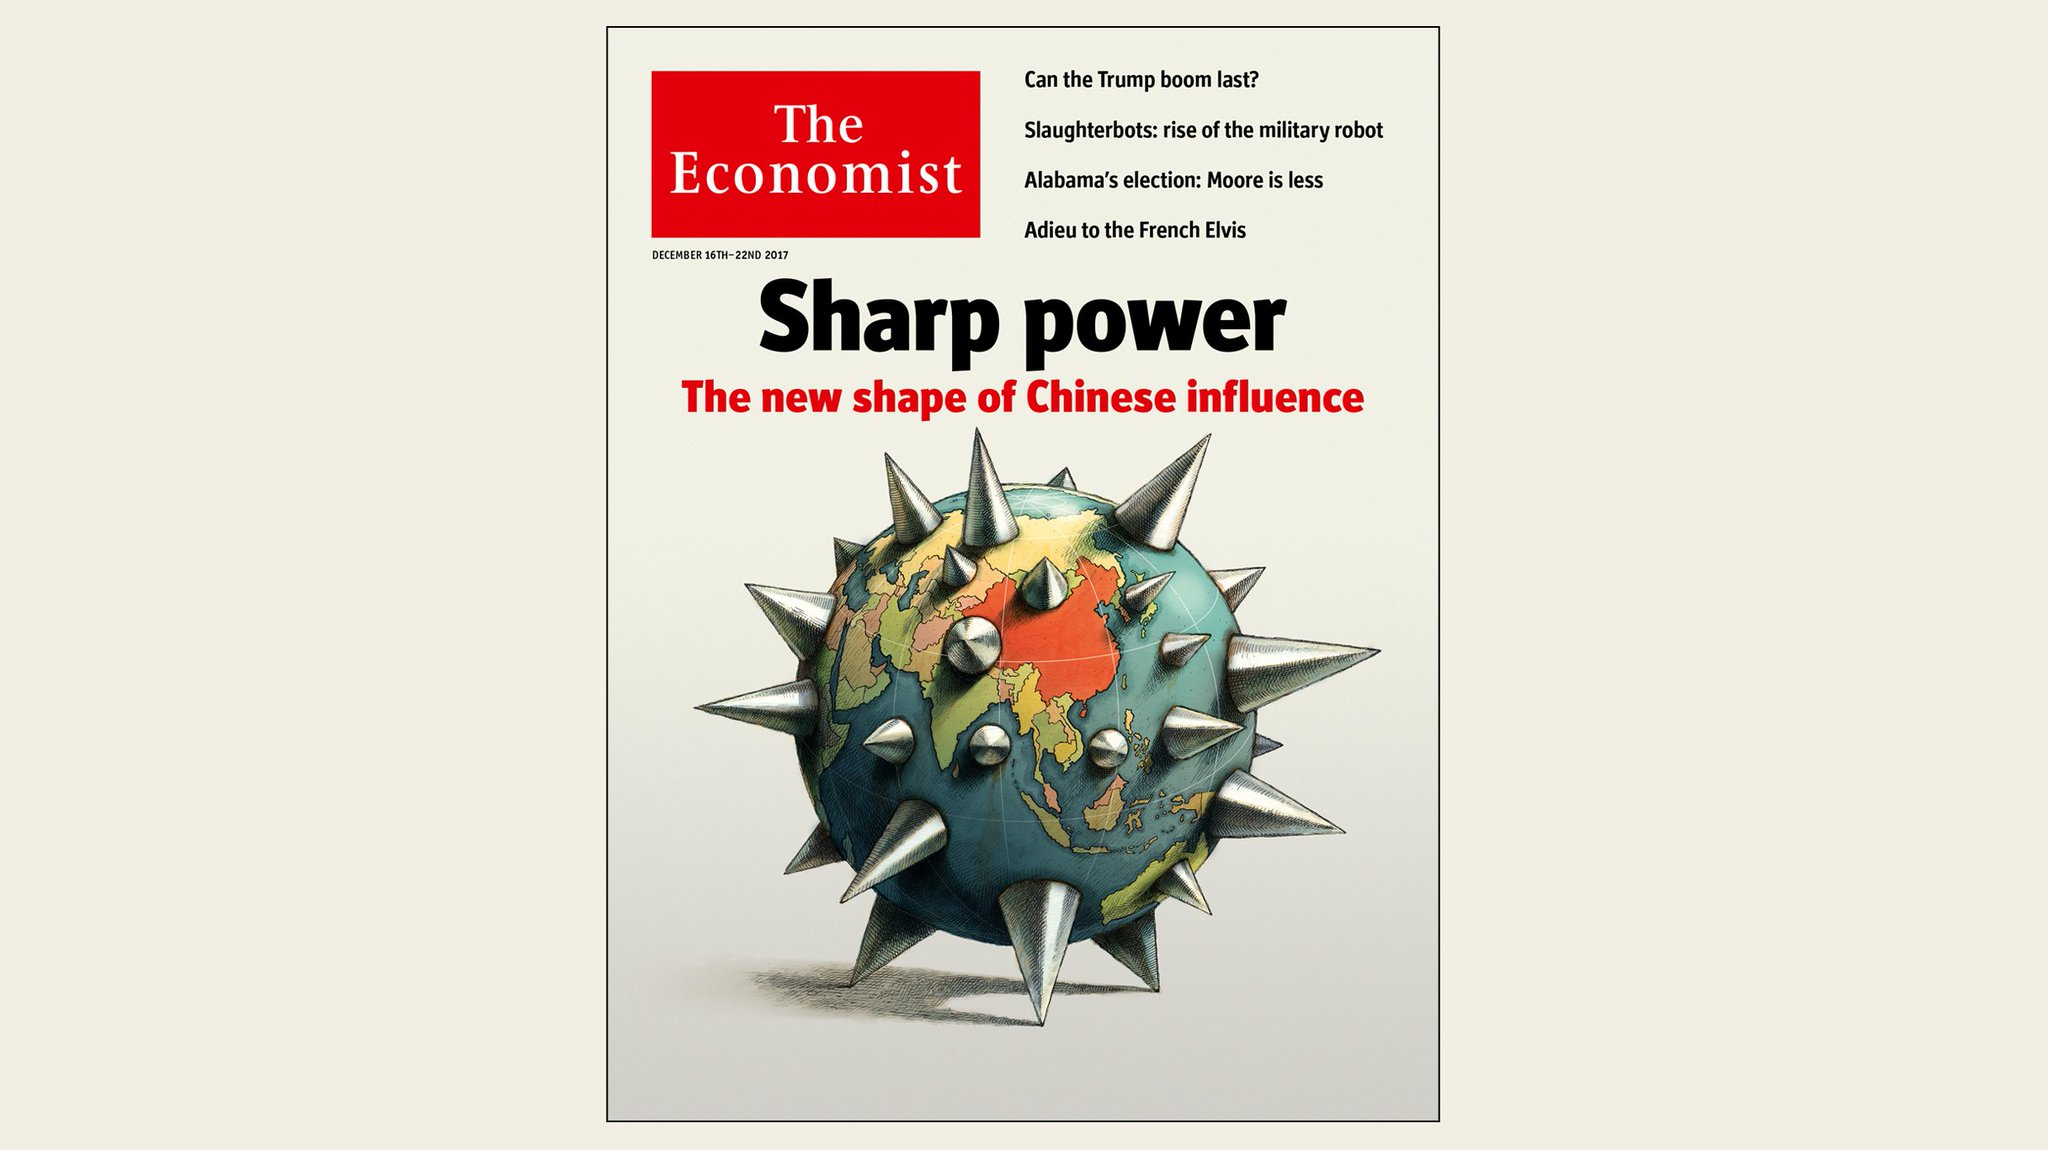 China is manipulating debate in Western democracies. What can be done about it? Our cover this week https://t.co/RYdlhI3IjS